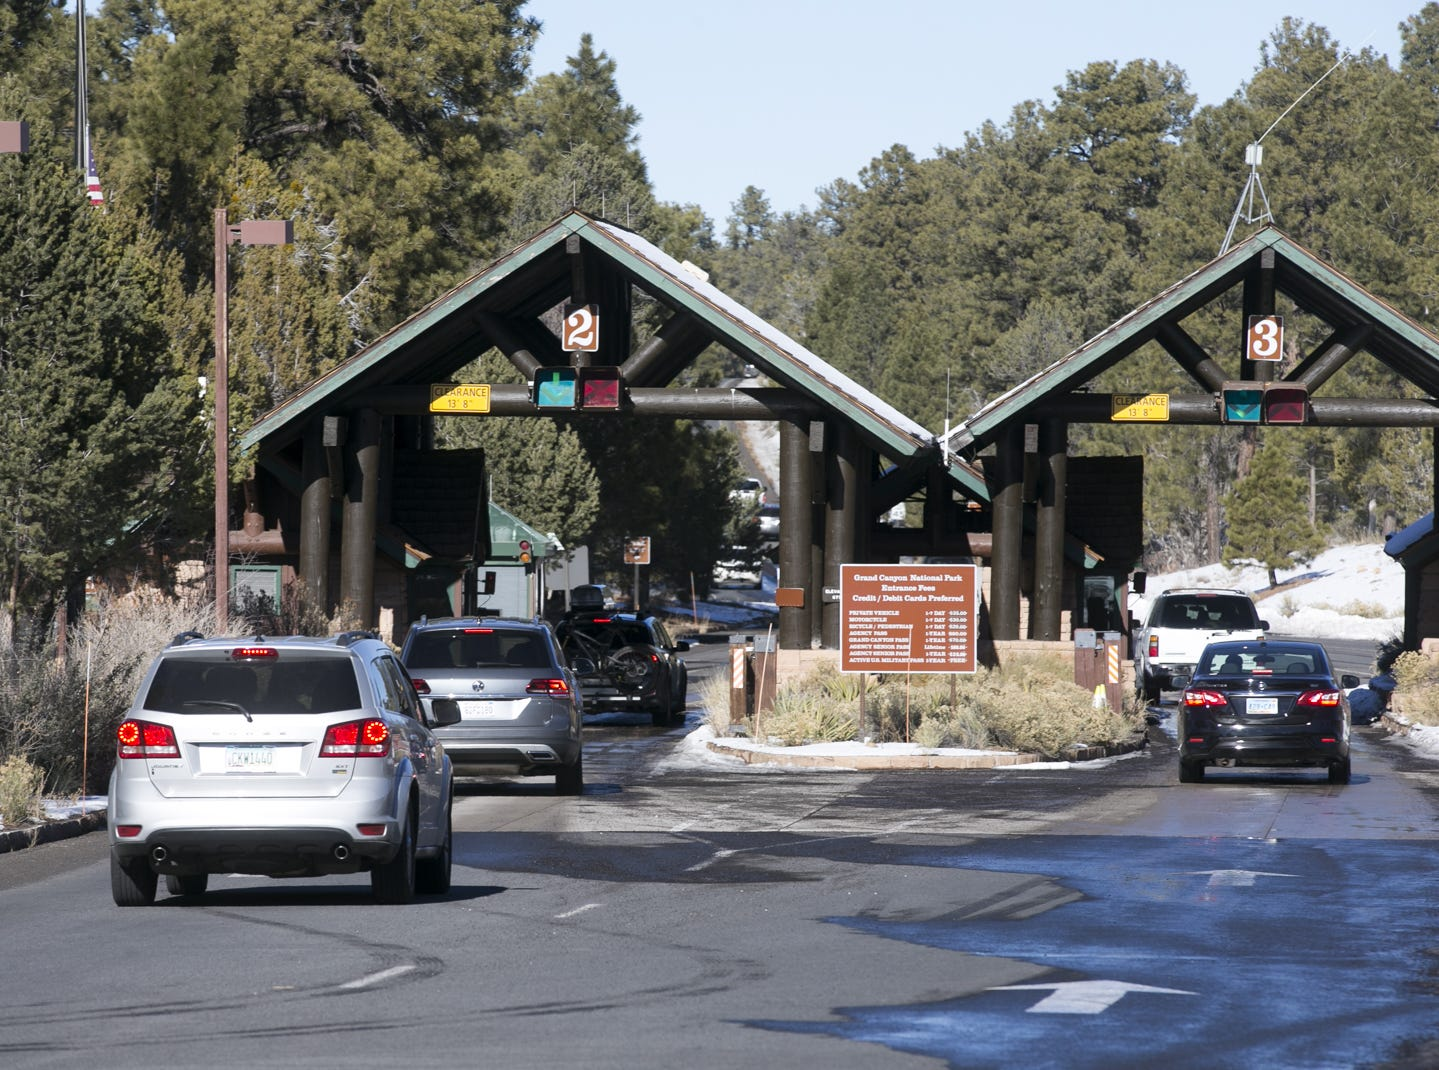 Visitors pass through the main entrance and enter freely at Grand Canyon National Park on Jan. 4, 2019. The park was staffed at minimum capacity due to the government shutdown but retained much of its services due to an executive order issued by Arizona Gov. Doug Ducey to run the park with state funds in the event of a shutdown.